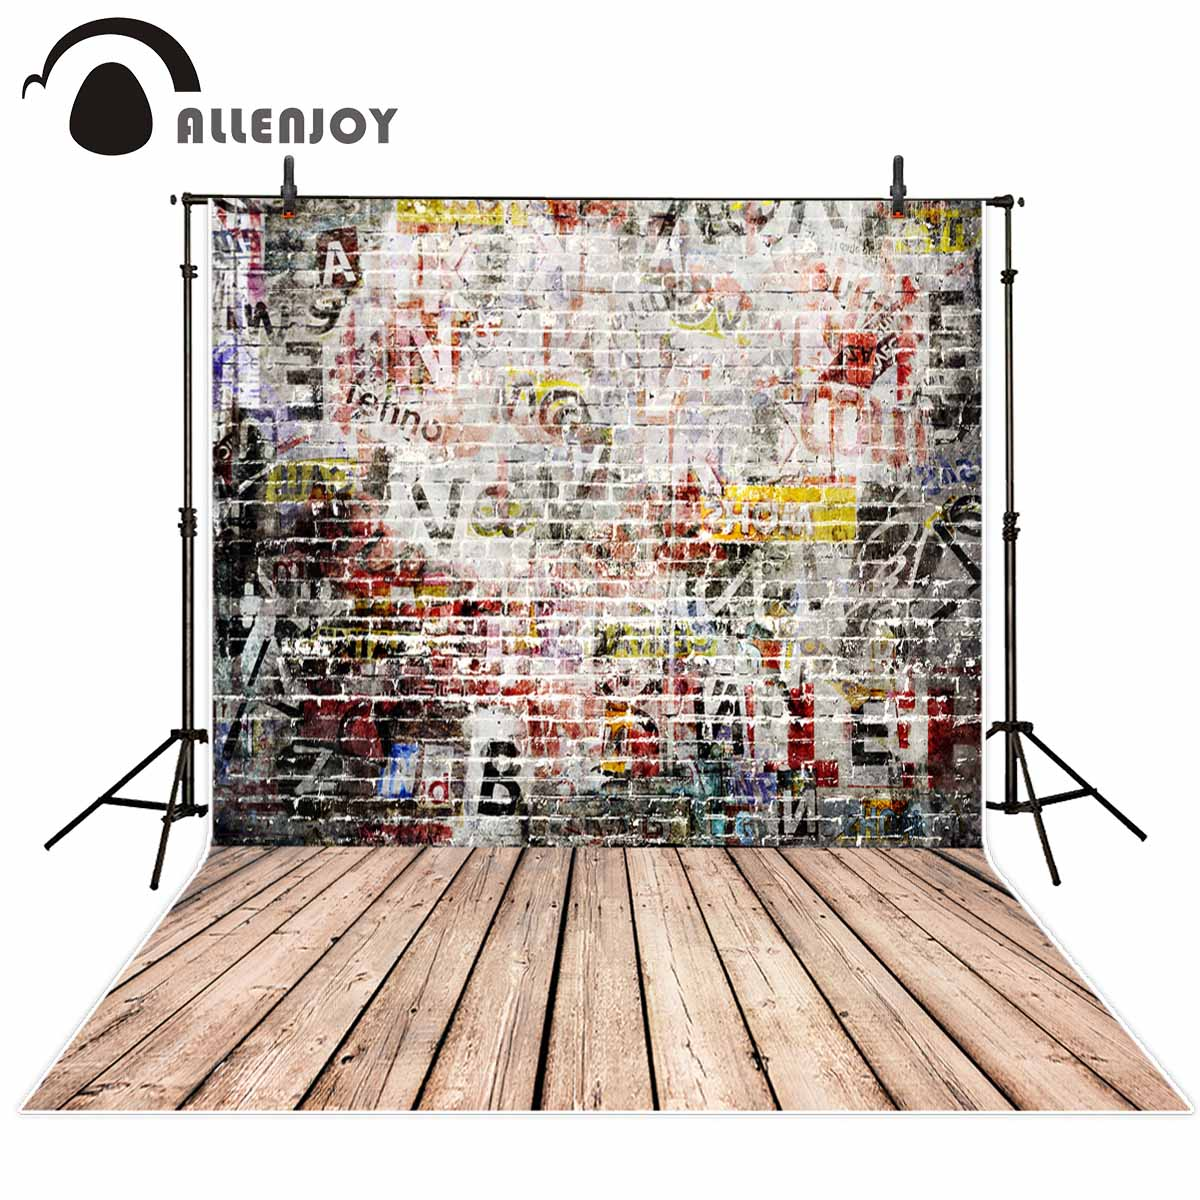 Allenjoy Graffiti background letters cool brick wall wood floor backdrop background for photography studio for photo studio foto